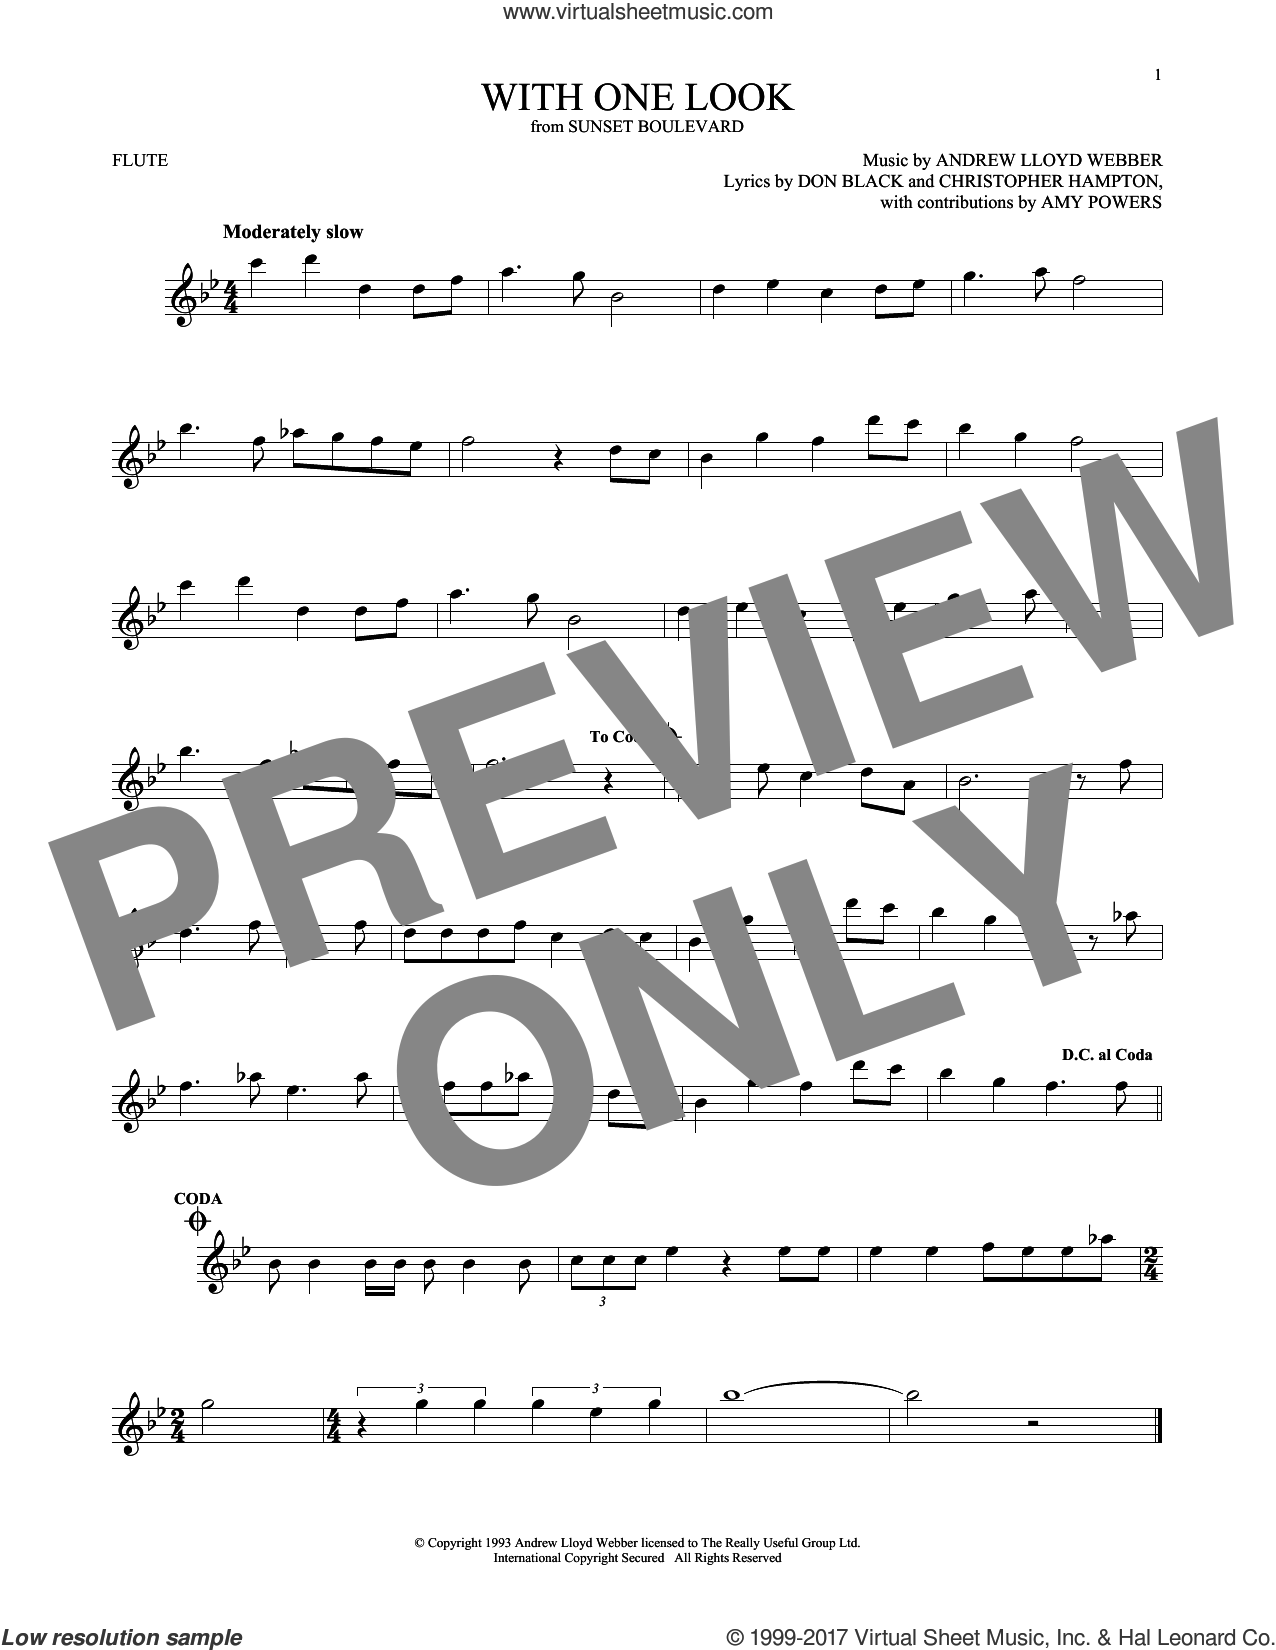 With One Look sheet music for flute solo by Andrew Lloyd Webber, Christopher Hampton and Don Black, intermediate skill level